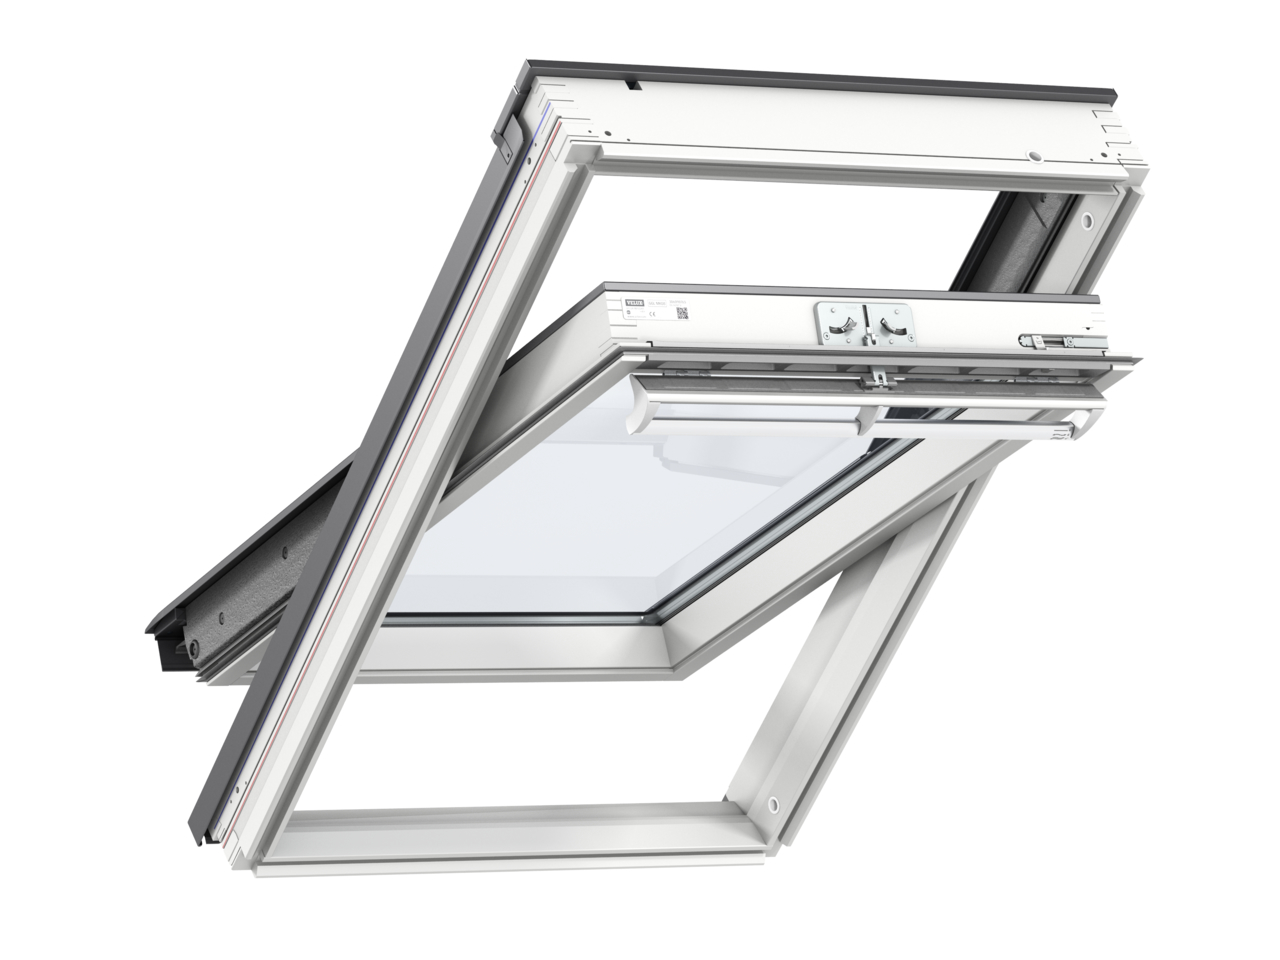 Velux GGL FK06 660 x 1180mm Centre Pivot 66 Pane Roof Window - White Painted